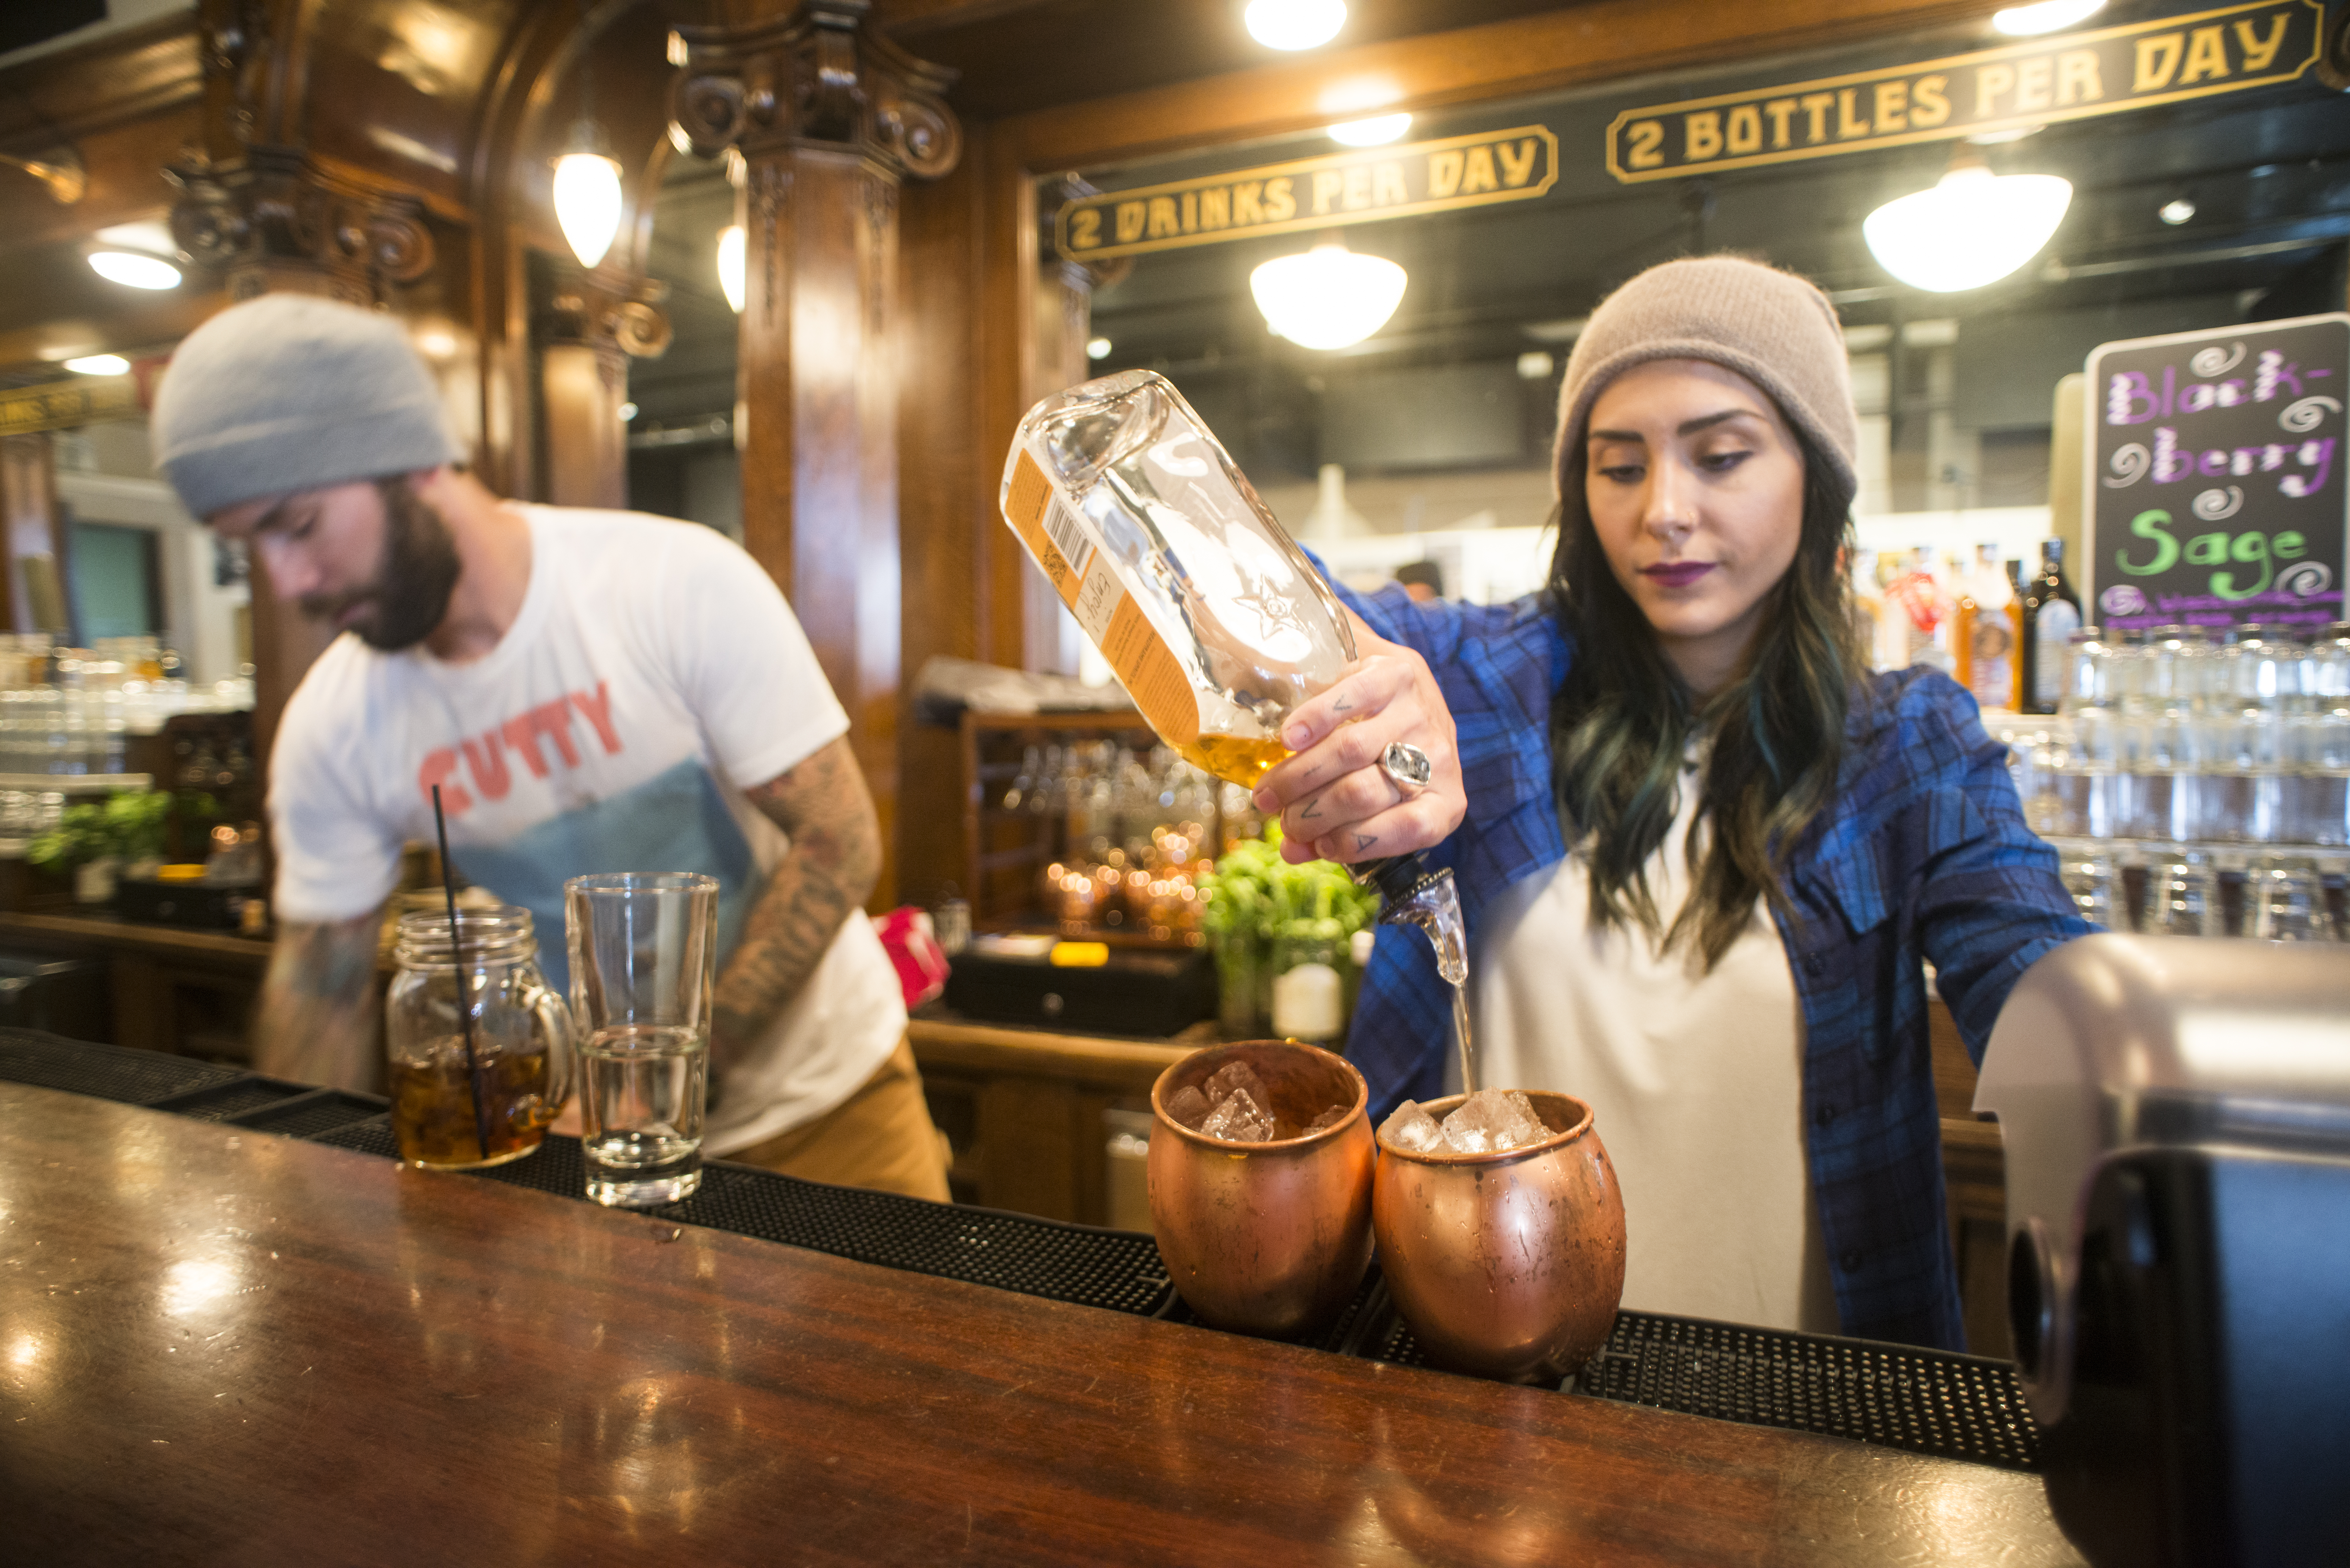 Alexandria Canavan makes Montucky Mules, the Montana version of the Moscow Mule, with bourbon in place of vodka, at Headframe Spirits.